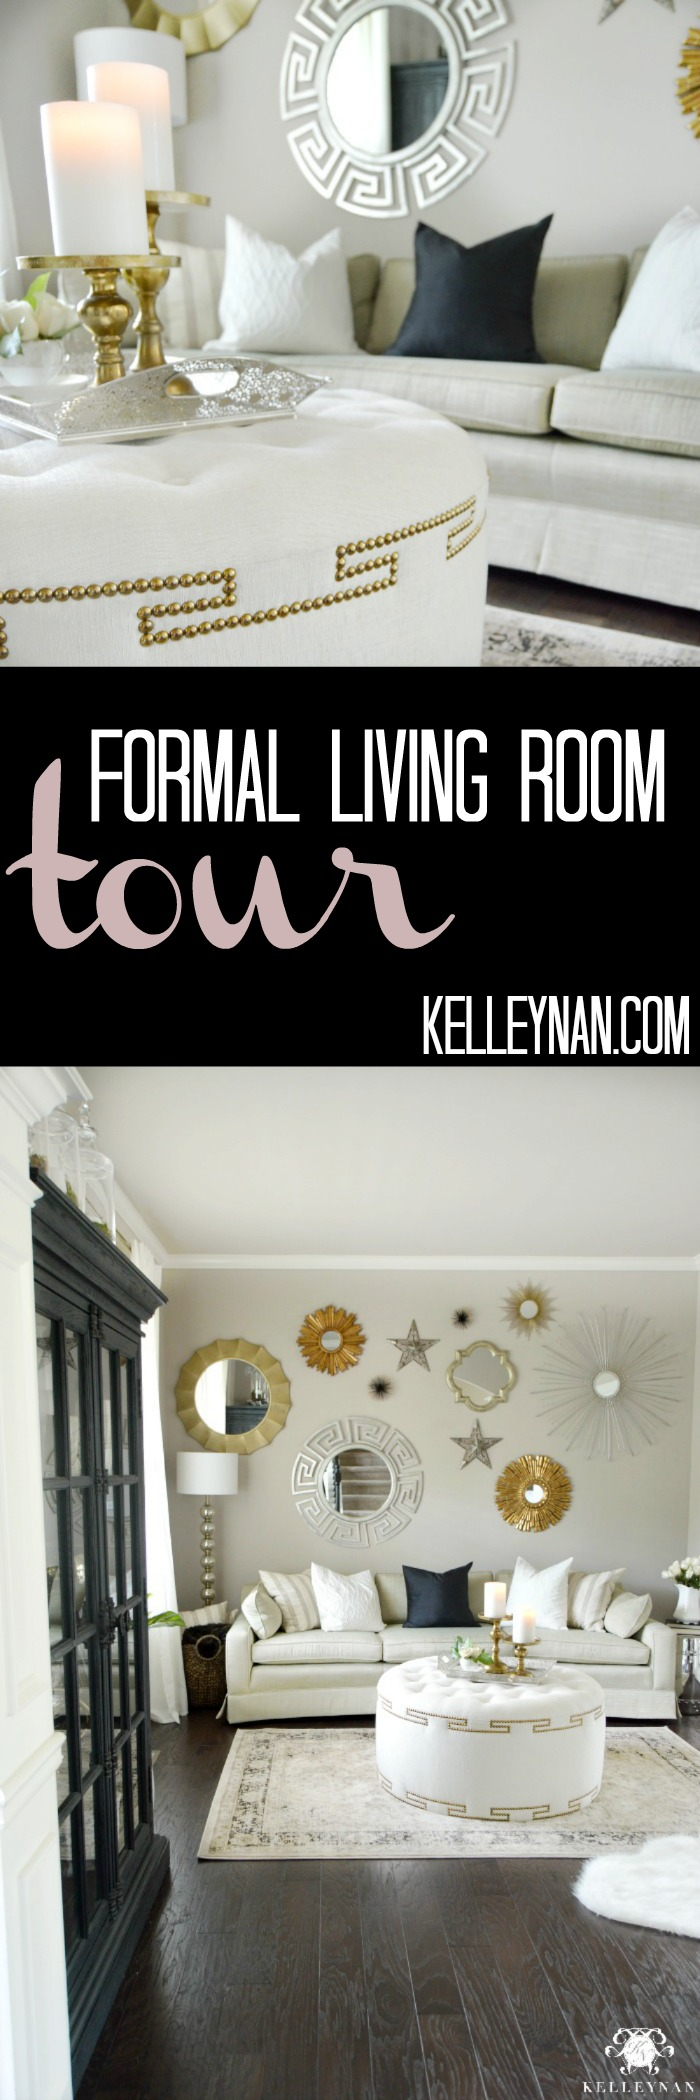 Formal Living Room Tour Pin